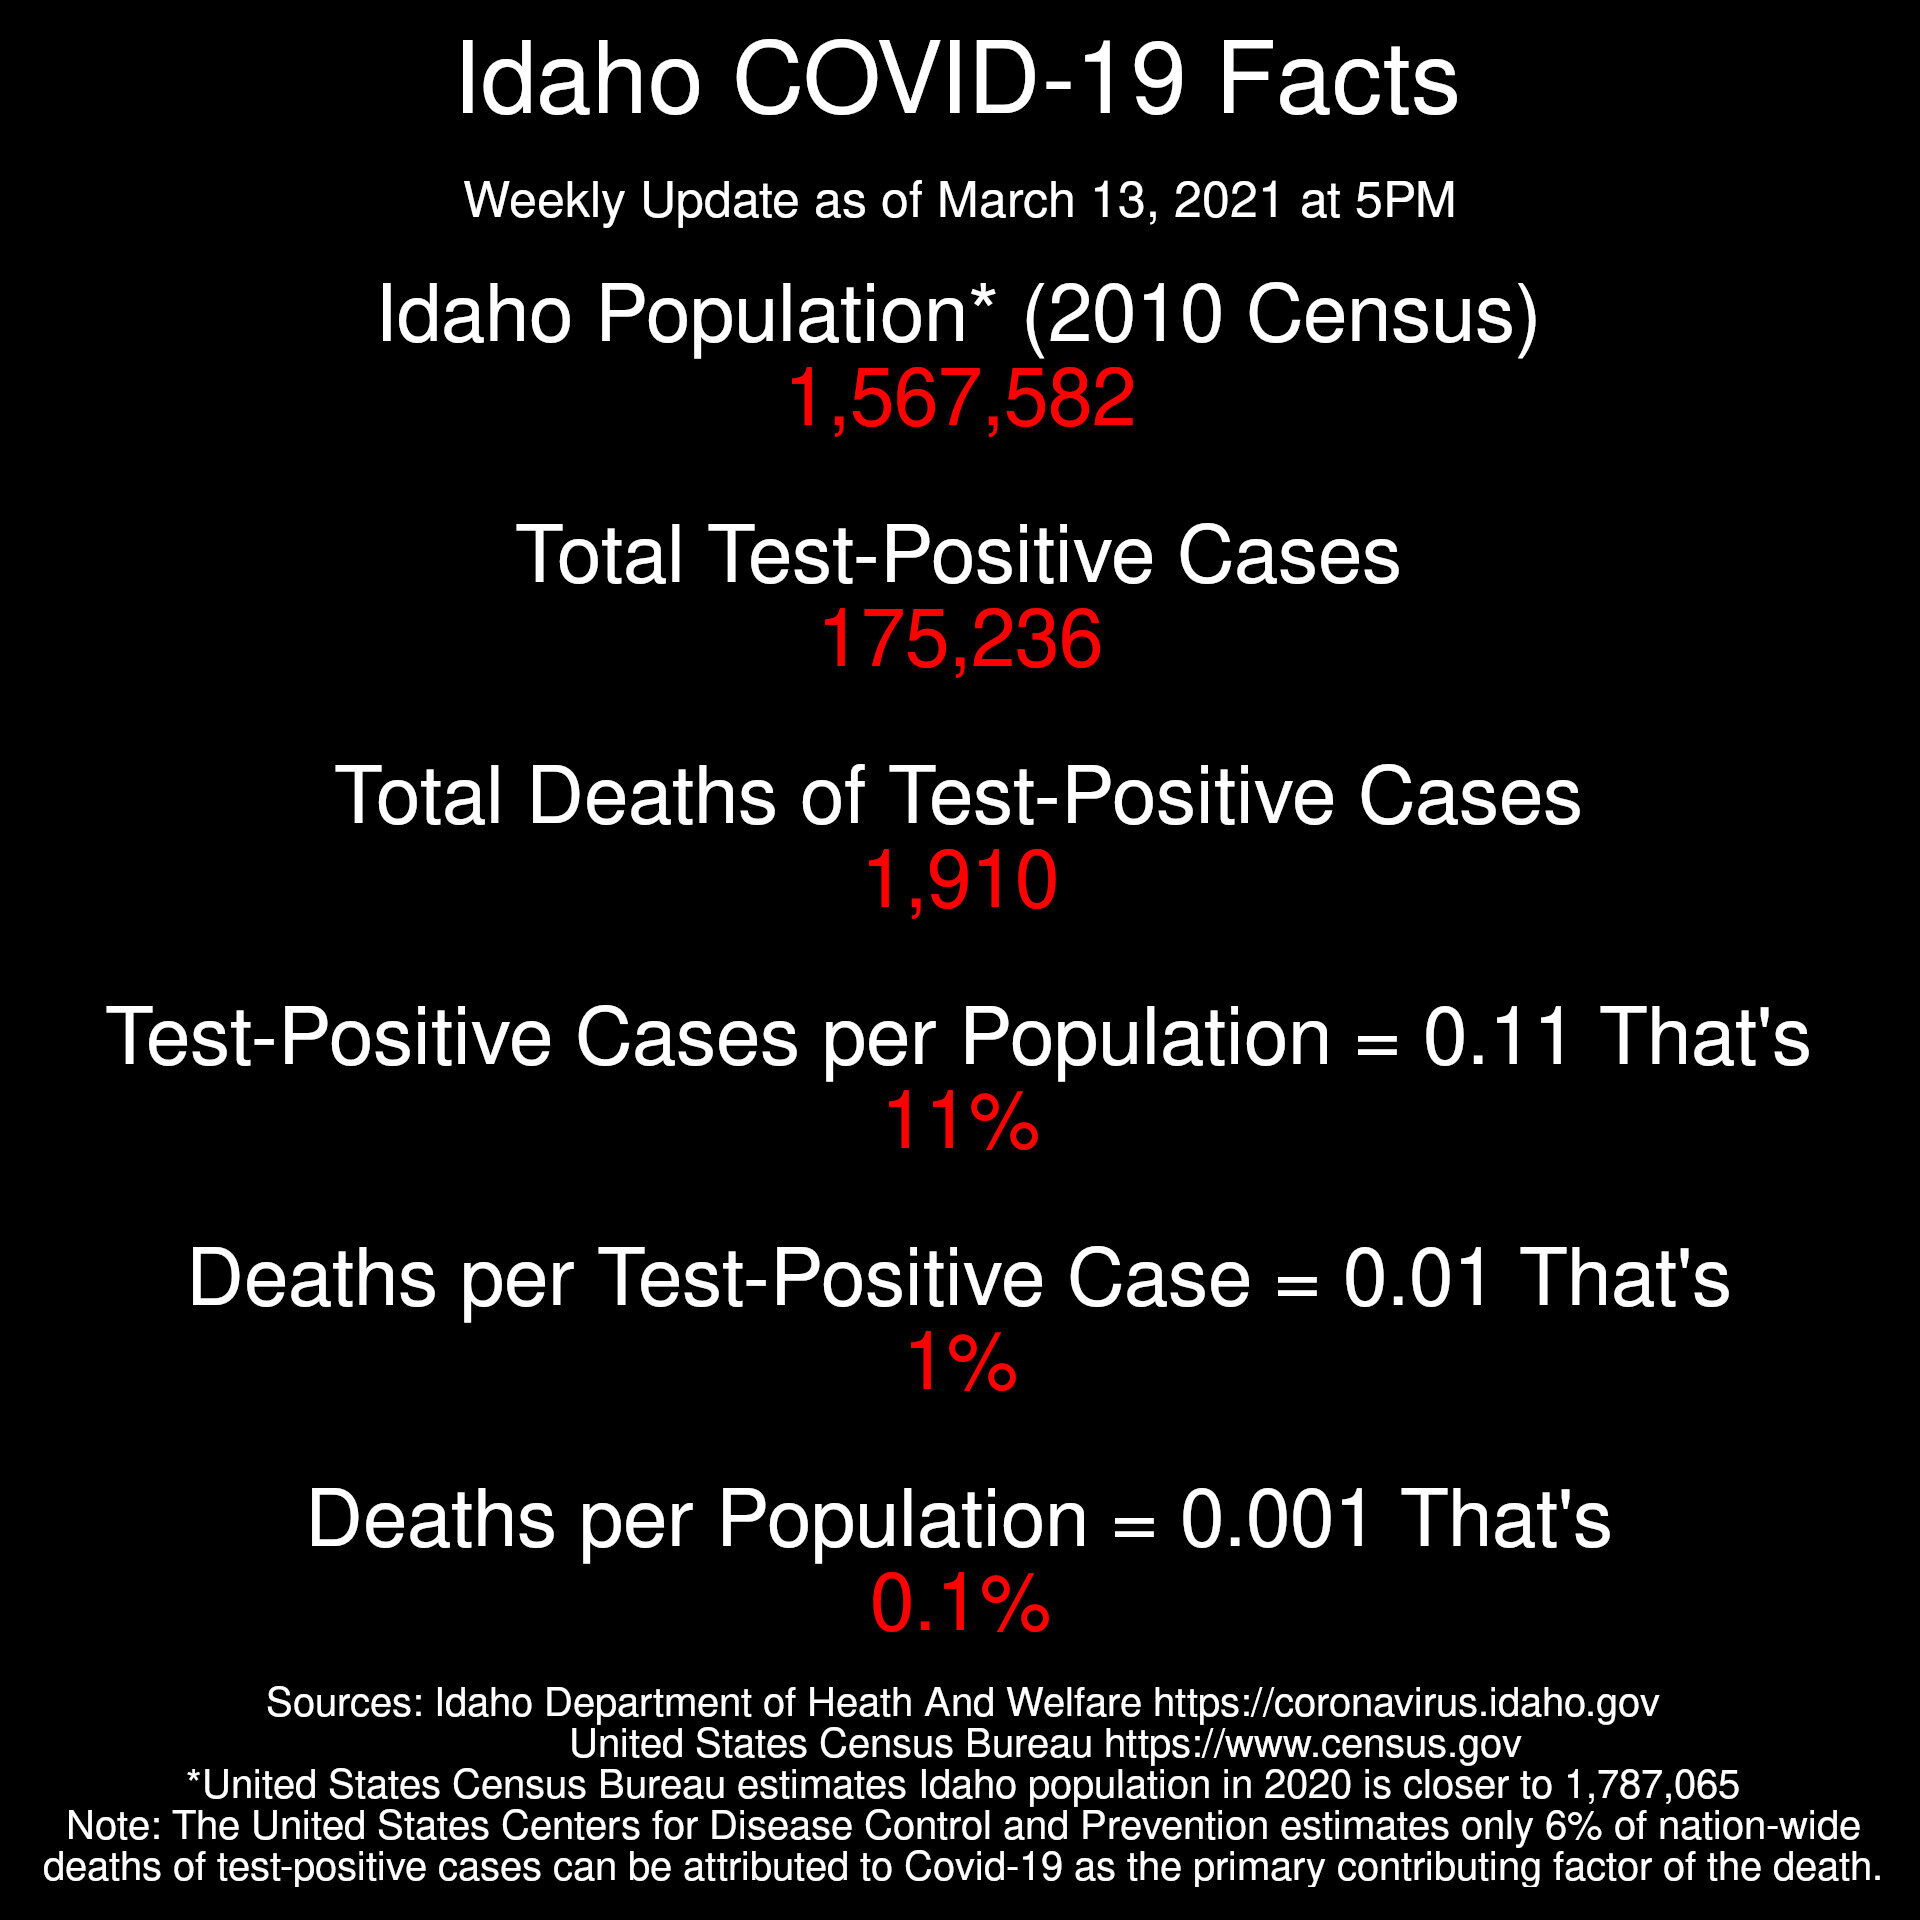 2021-03-14 Idaho Coronavirus Facts Weekly Update   Idaho Coronavirus Facts  Weekly Update as of March 13, 2021 at 5PM  Population* (2010 Census): 1,567,582 Total Test-Positive Cases: 175,236 Total Deaths of Test-Positive Cases: 1,910  Test-Positive Cases per Population = 0.11 That's just 11%  Deaths per Test-Positive Case: 0.01 That's just 1%  Deaths per Population: 0.001 That's just 0.1%  Sources: Idaho Department of Heath And Welfare https://coronavirus.idaho.gov United States Census Bureau https://www.census.gov *United States Census Bureau estimates Idaho population in 2020 is closer to 1,787,065 Note: The United States Centers for Disease Control and Prevention estimates only 6% of nation-wide deaths of test-positive cases can be attributed to Covid-19 as the primary contributing factor of the death.